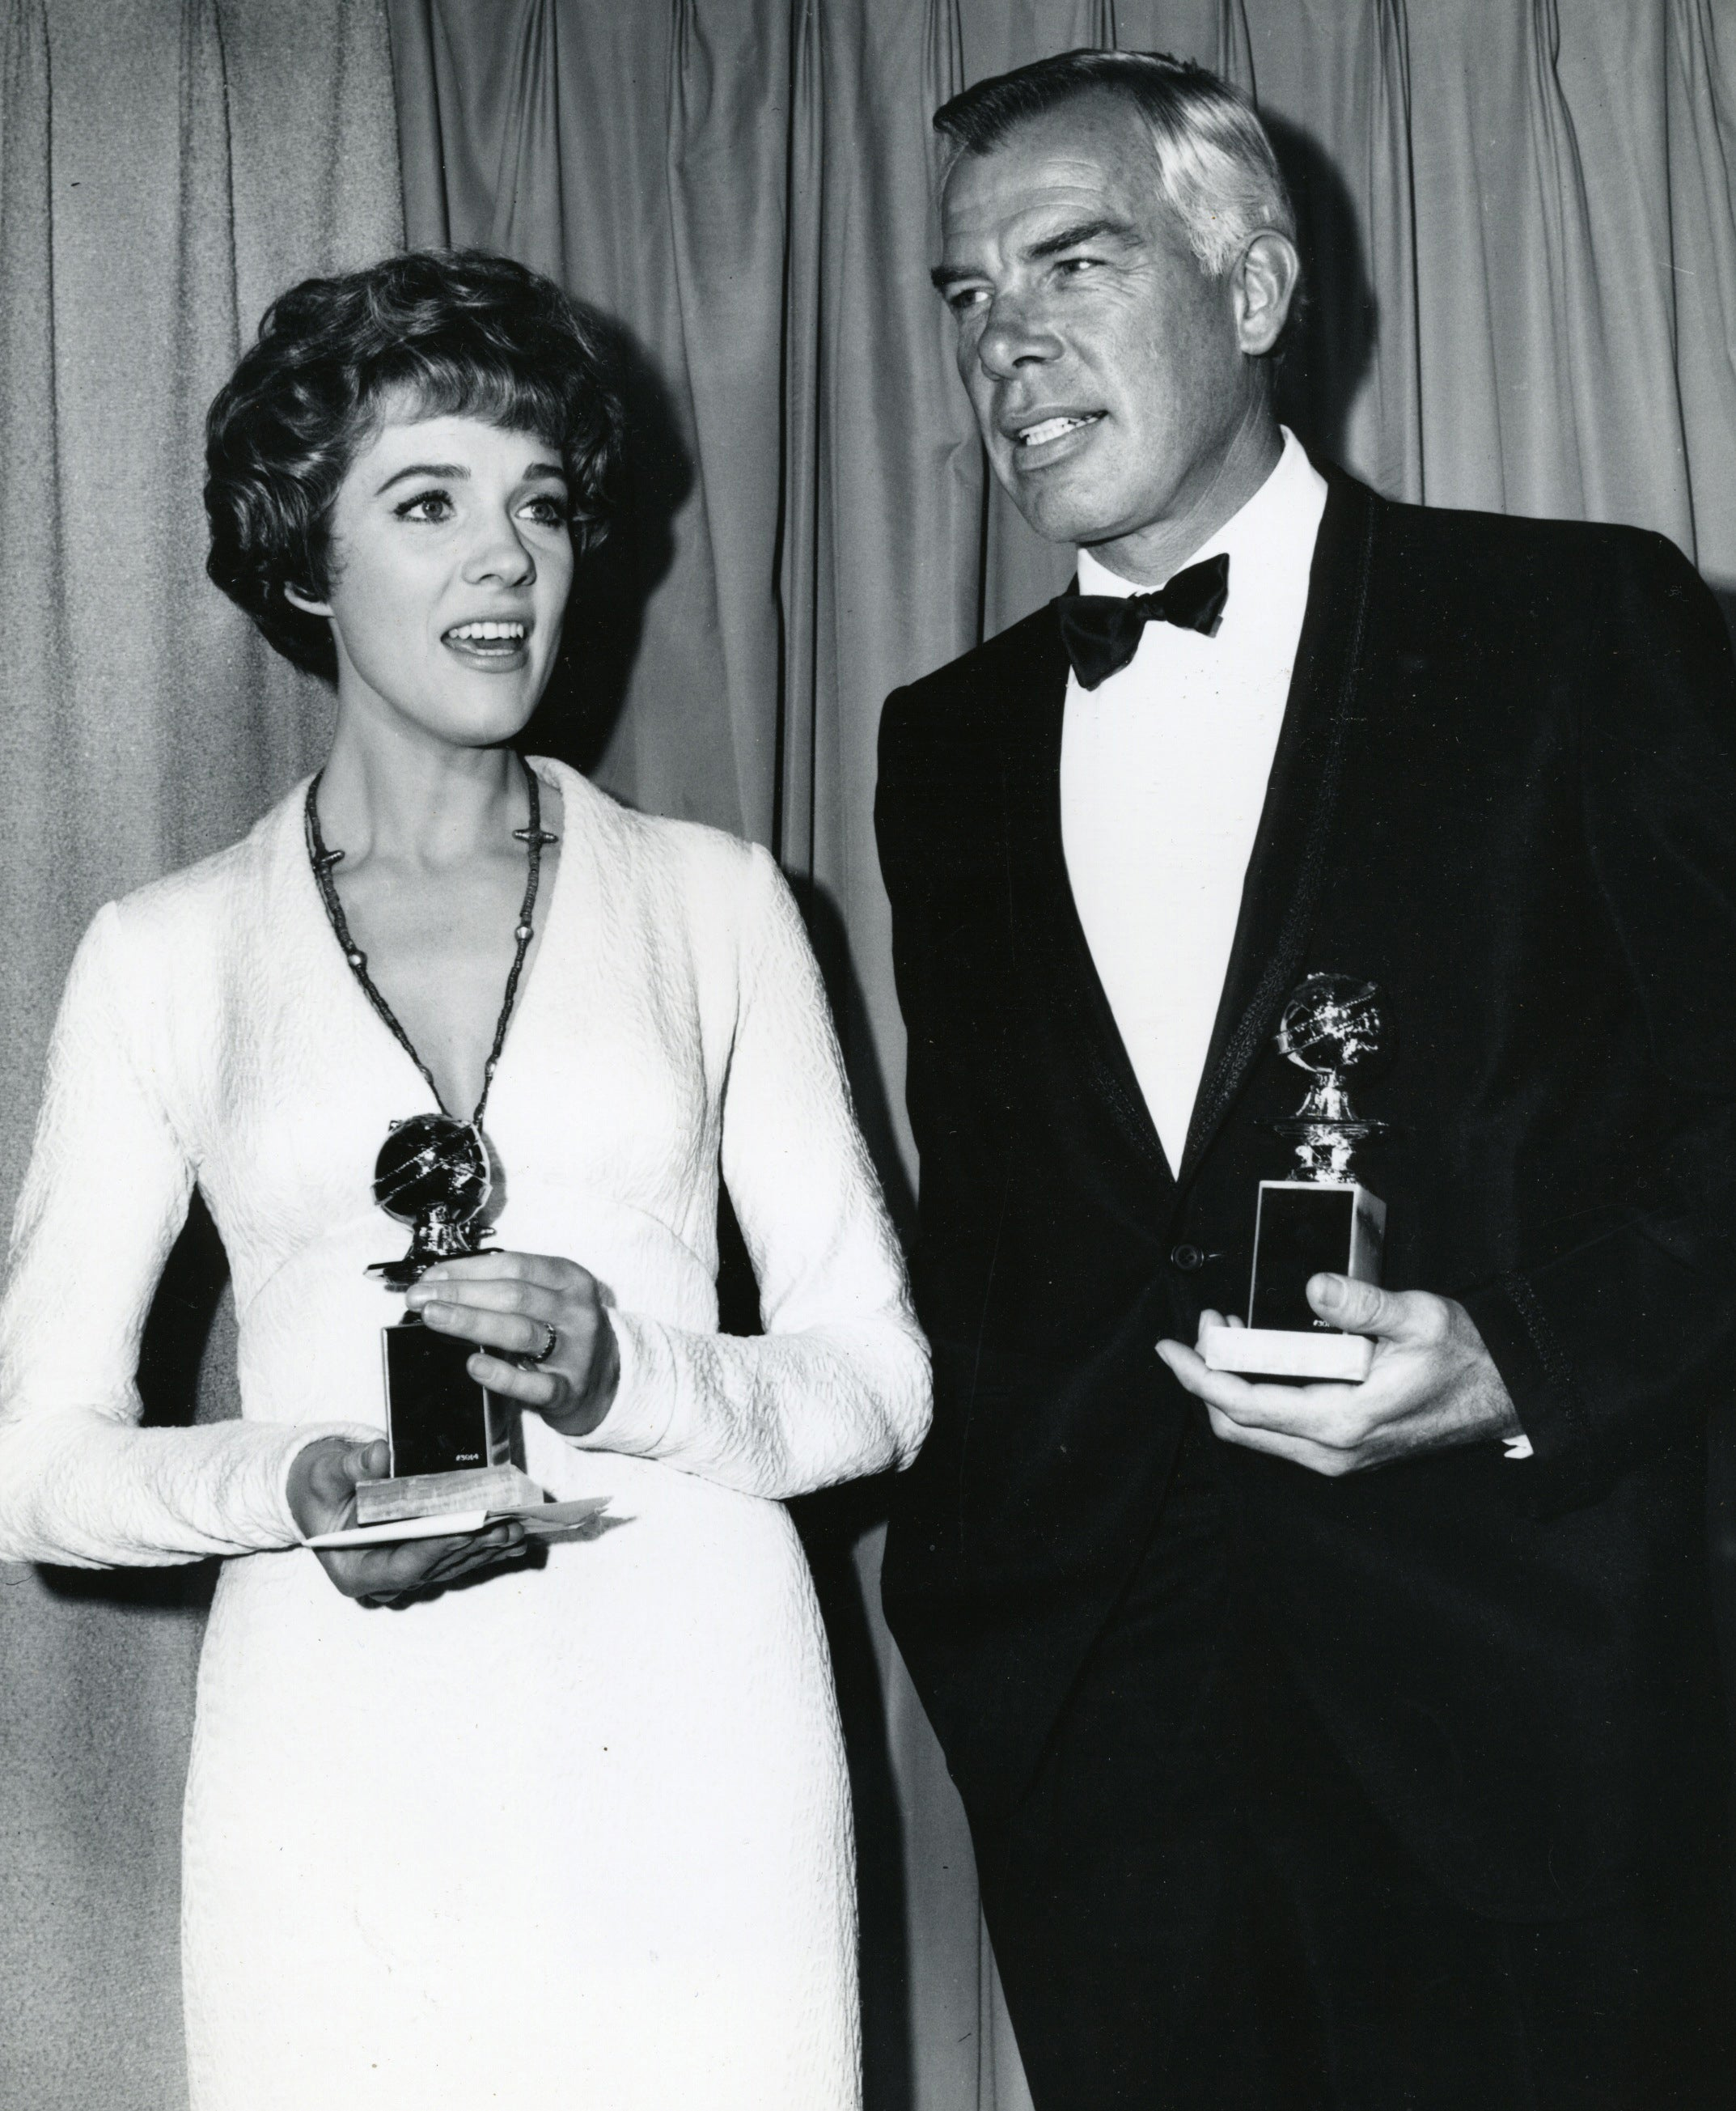 Julie Andres and Lee Marvin at the 1966 Golden Globes